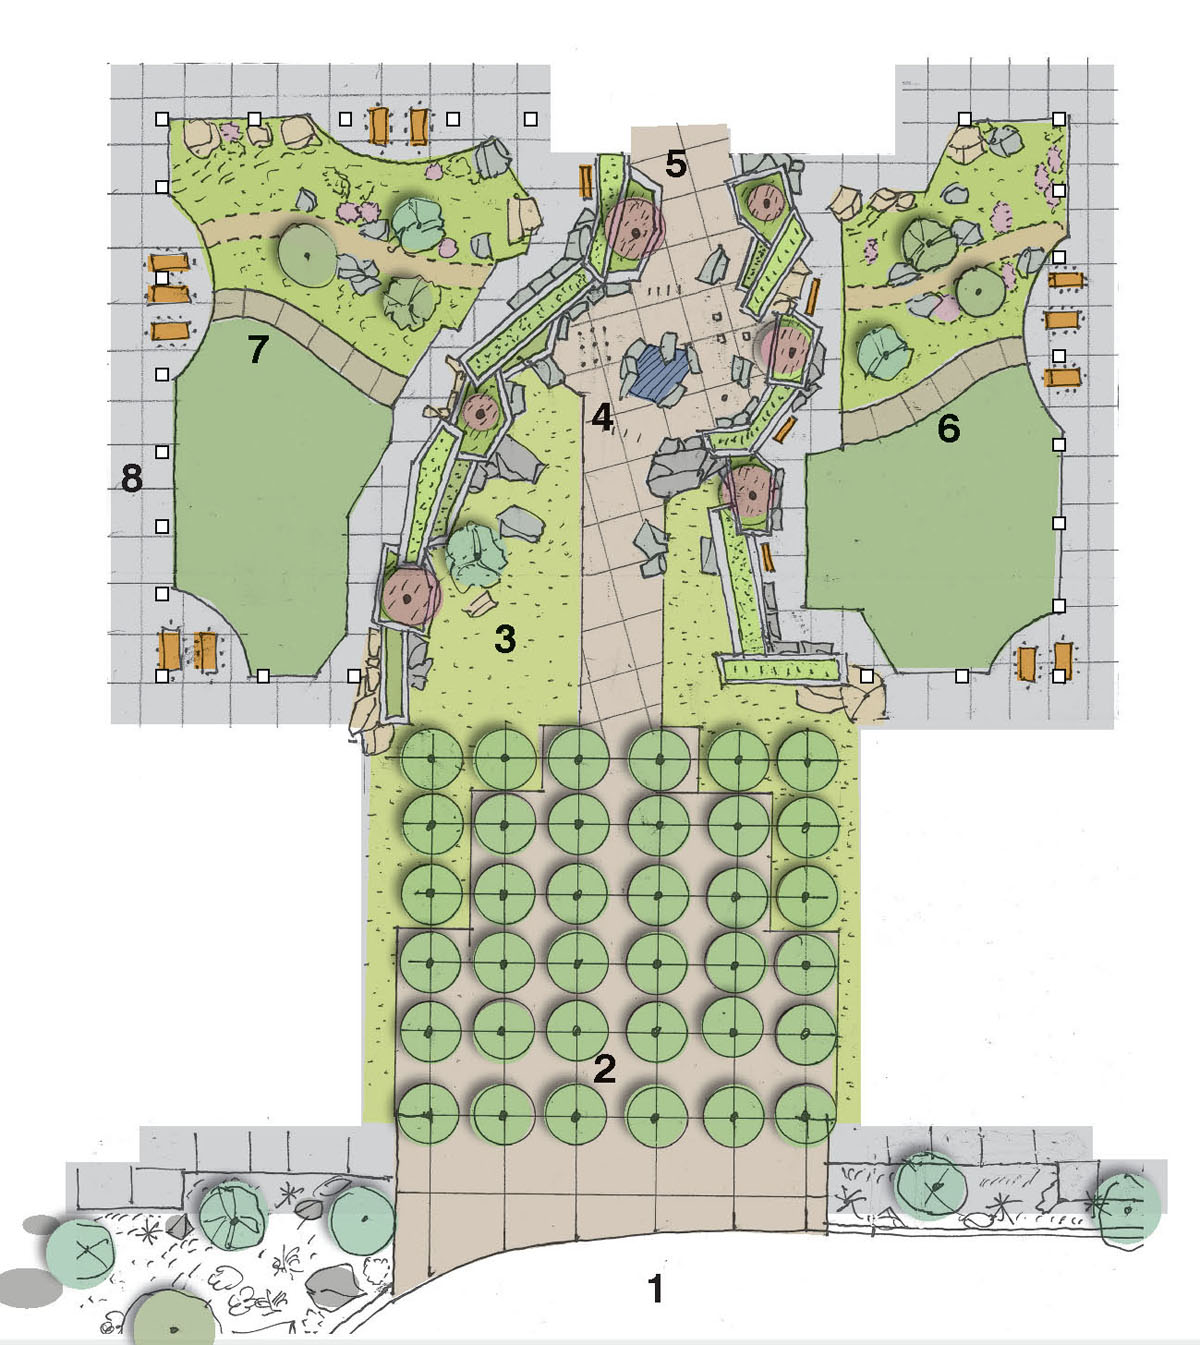 Computer rendering of the layout for the courtyard area at the school for the deaf and the blind.